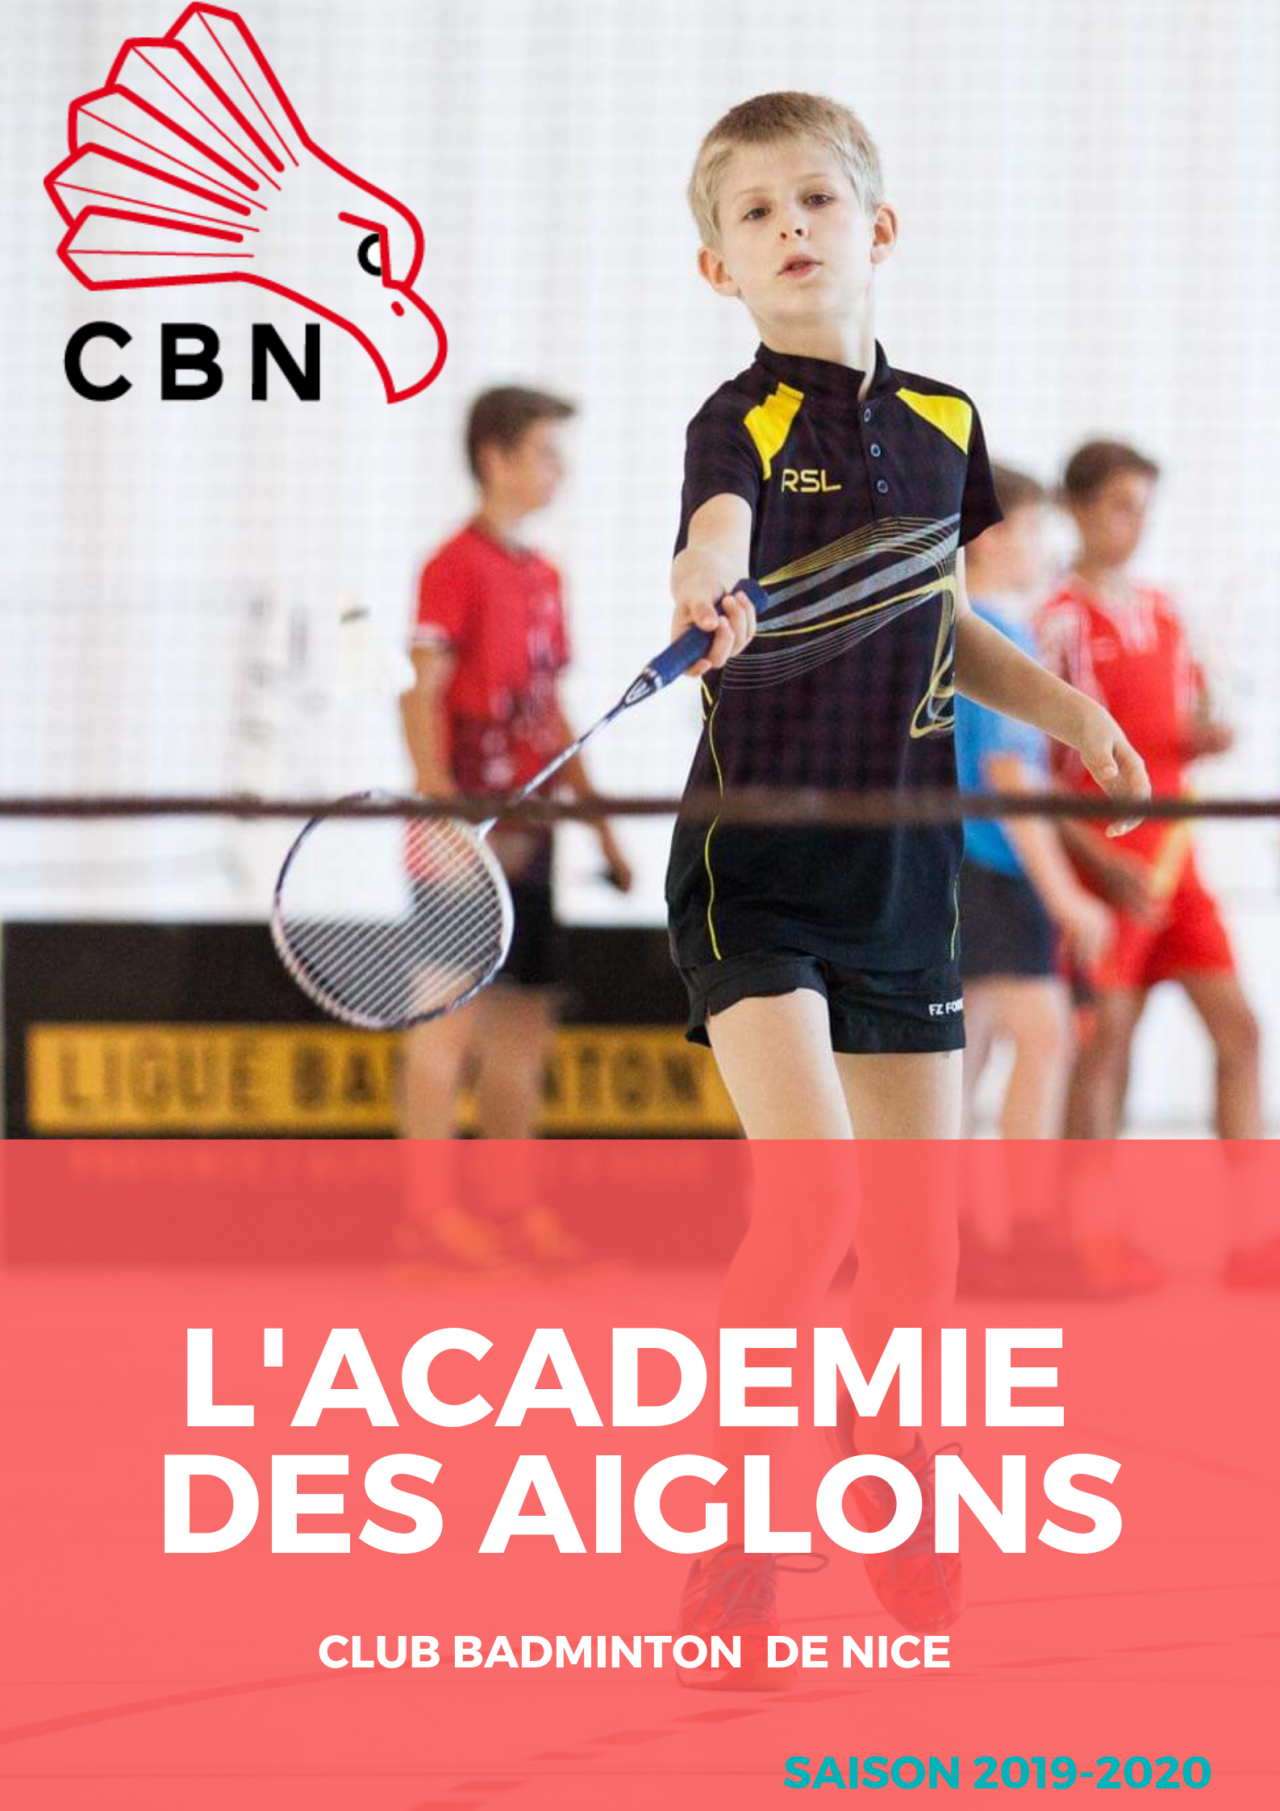 https://www.clubbadmintonnice.org/wp-content/uploads/2019/08/1-1280x1811.png